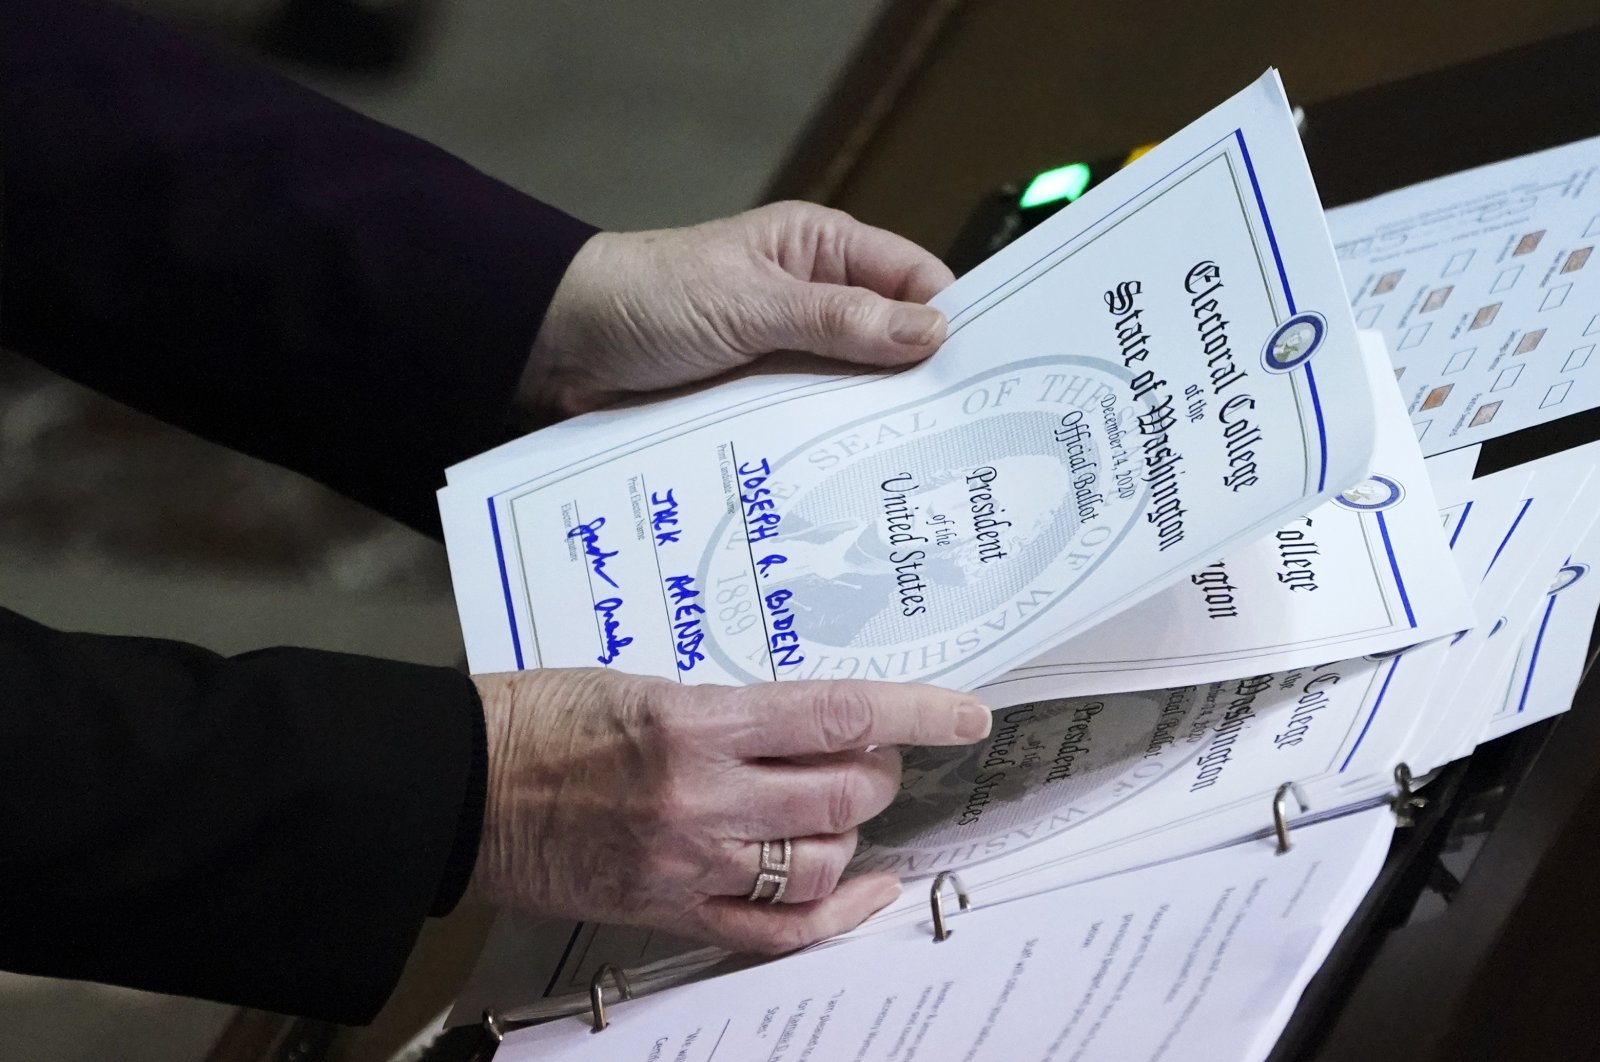 Secretary of State Kim Wyman holds a ballot marked for President-elect Joe Biden that was cast by Jack Arends, a member of Washington's Electoral College, at the state Capitol in Olympia, Wash., Monday, Dec. 14, 2020. (AP Photo)